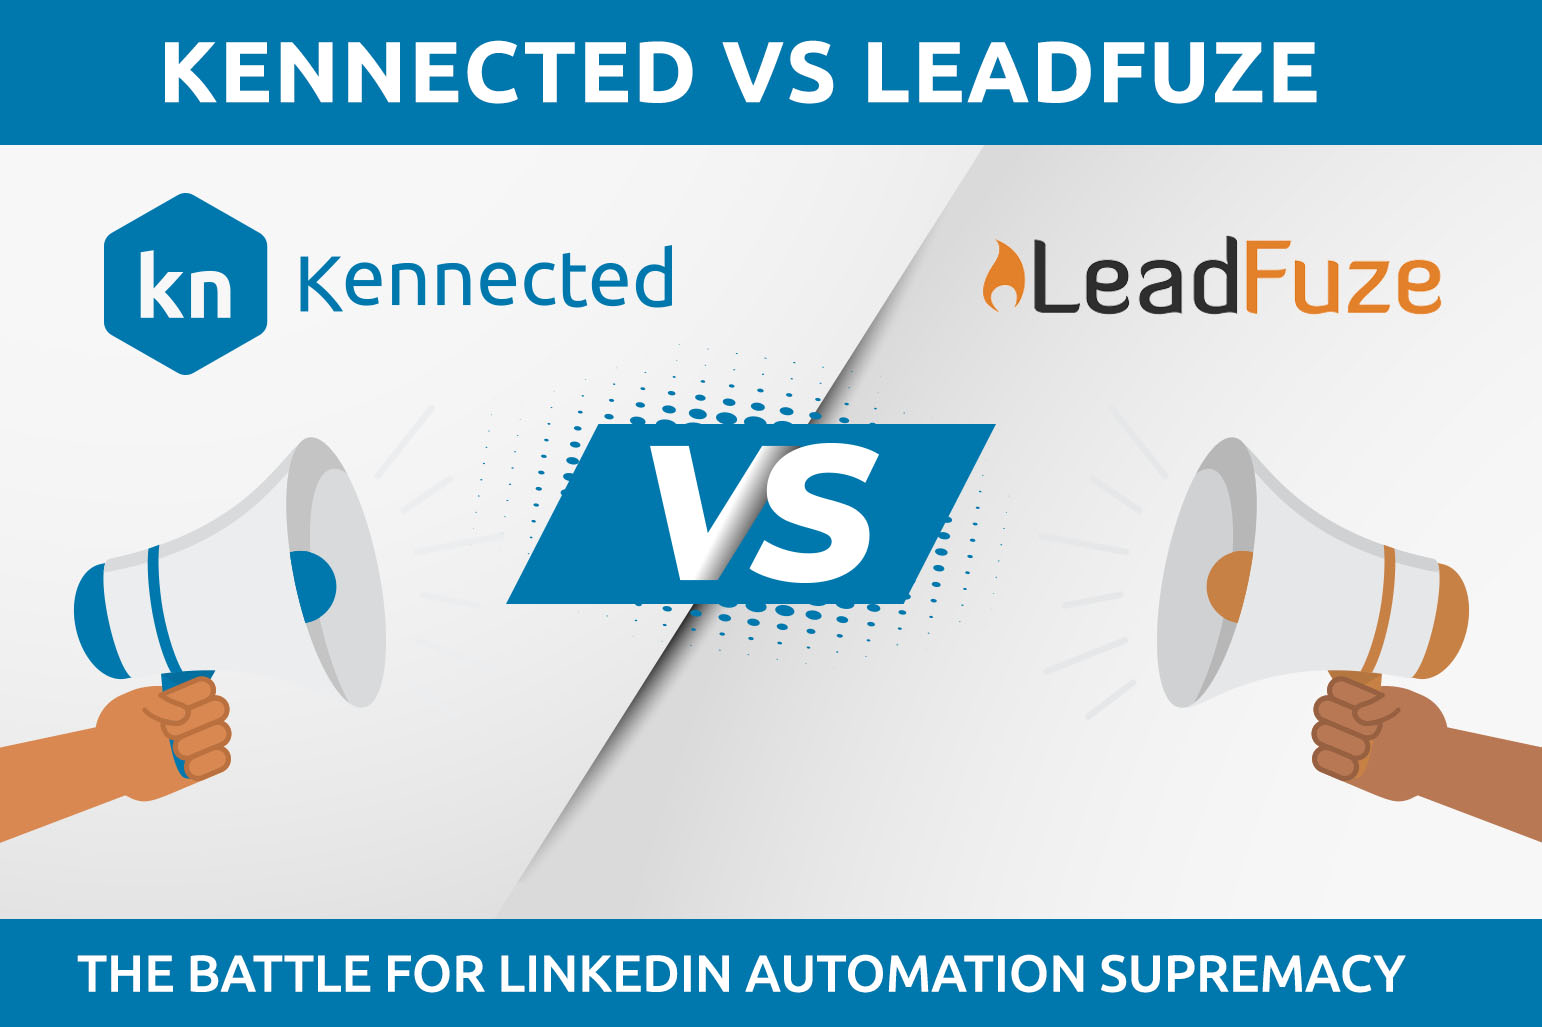 LeadFuze Vs. Kennected | The Battle For LinkedIn Automation Supremacy